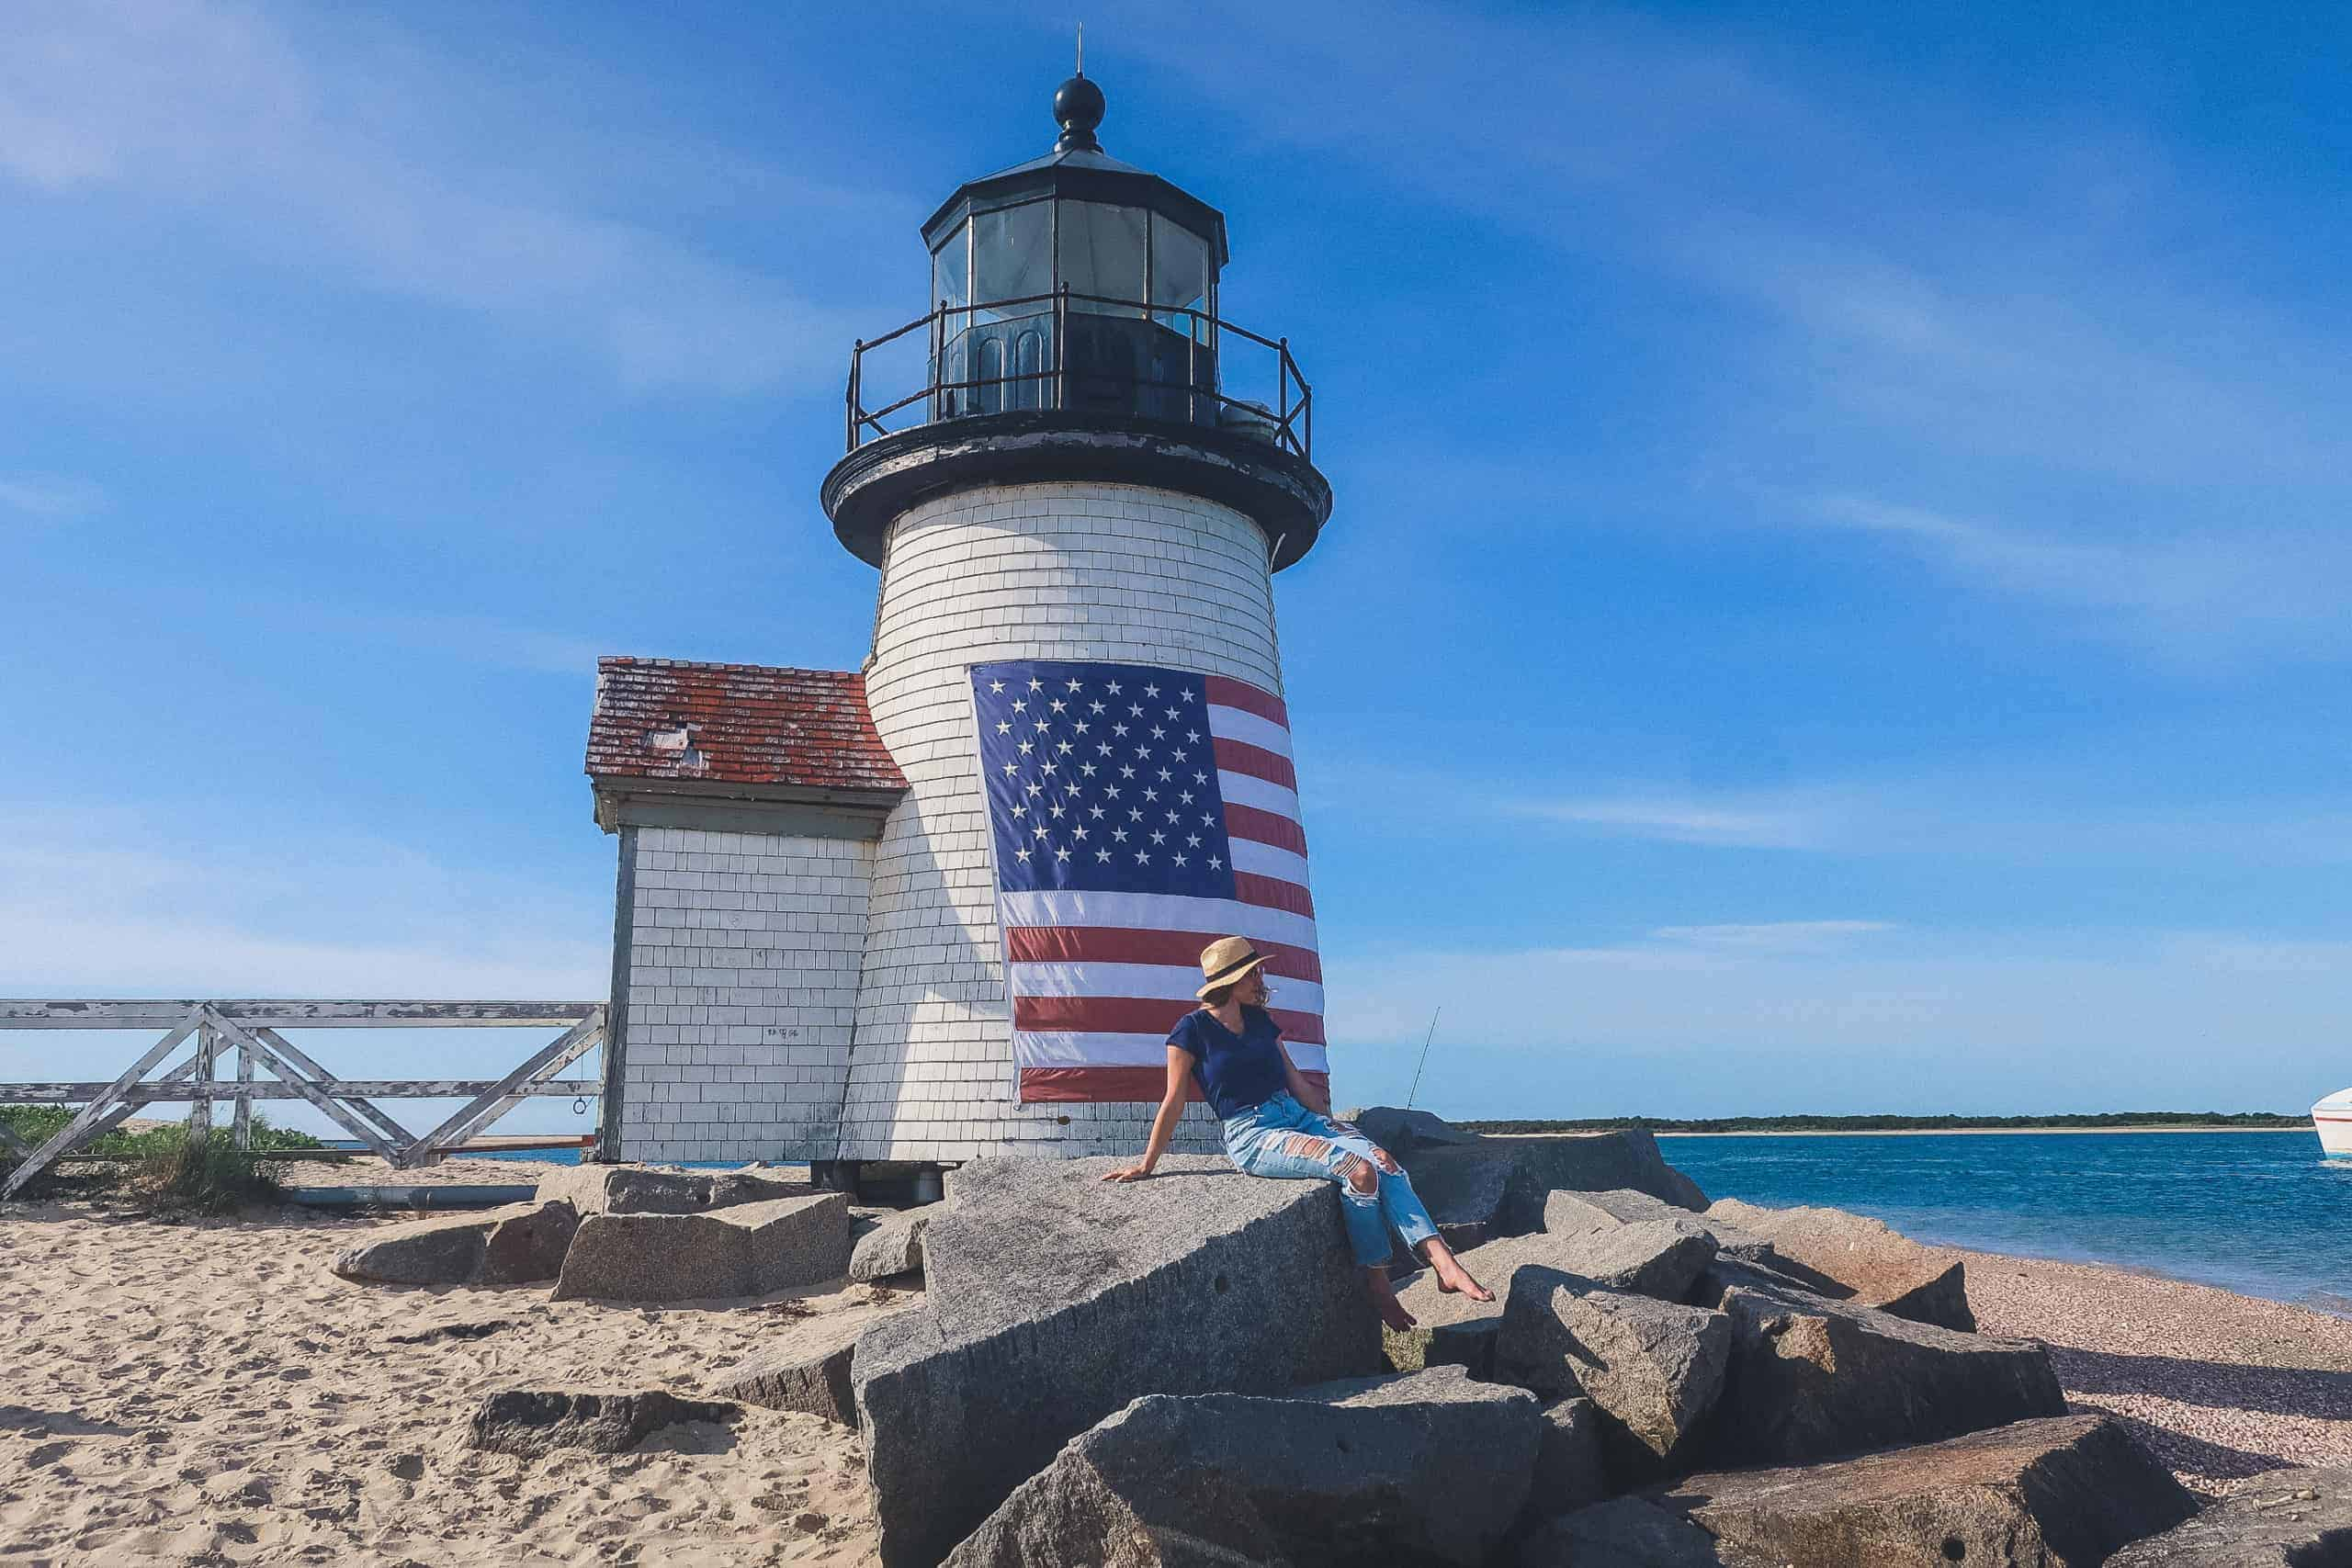 white lighthouse in Nantucket with the American flag painted on it